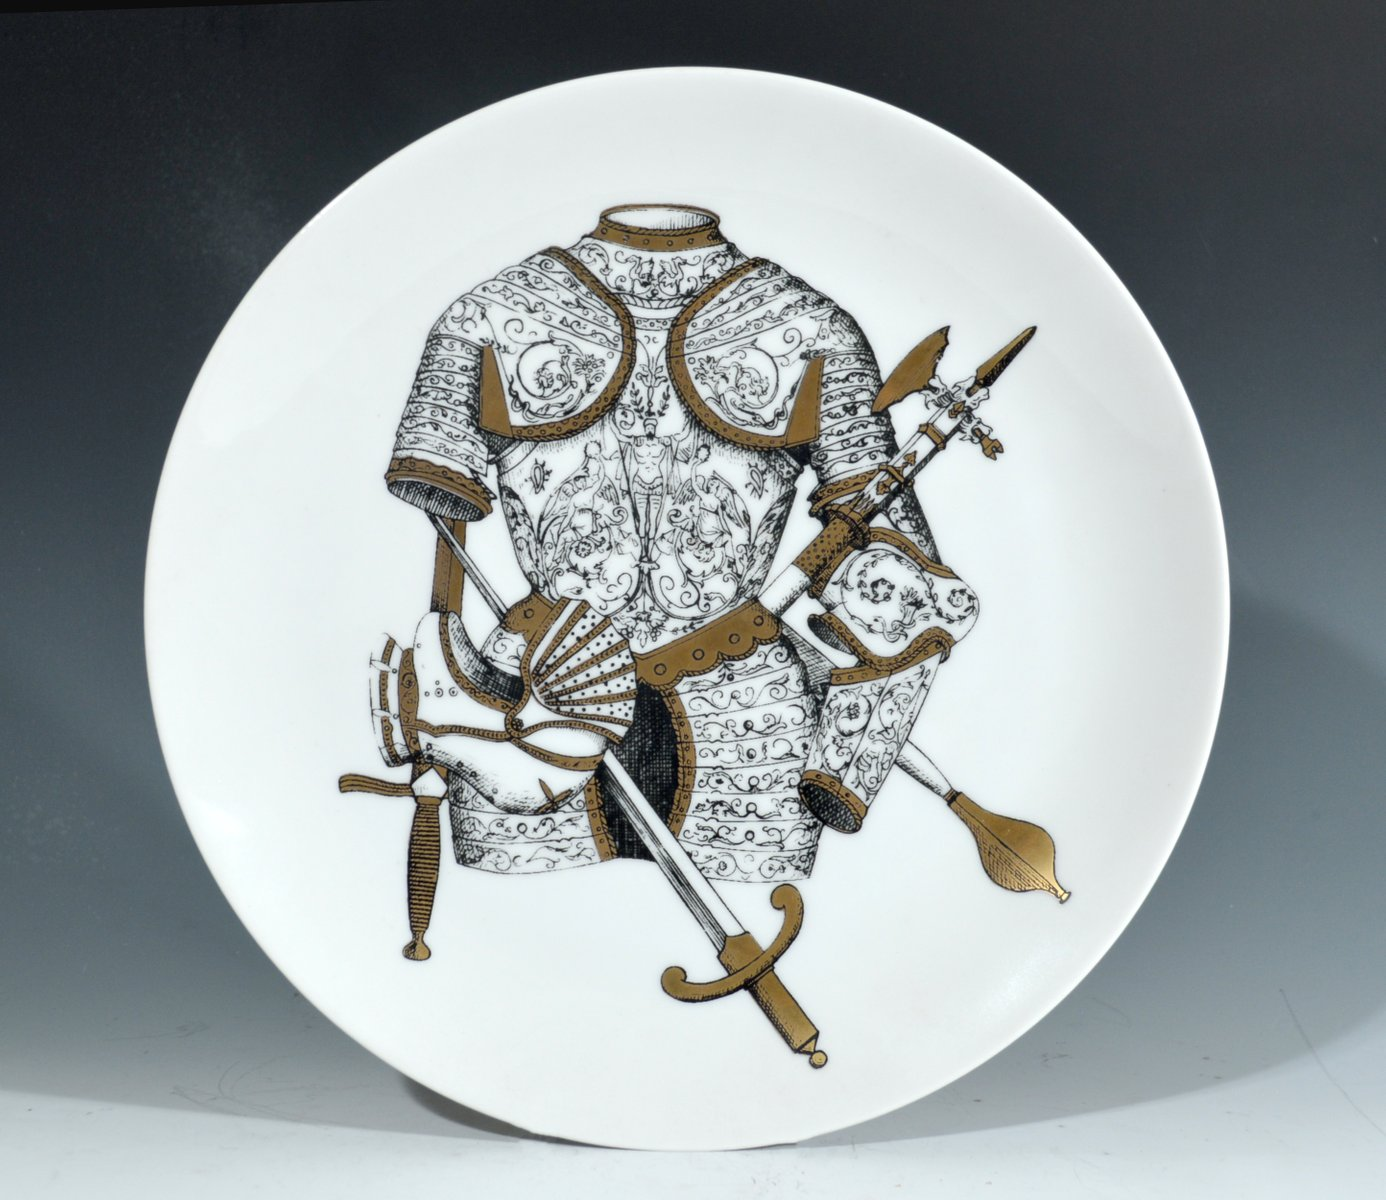 vintage italian plate with coat of armor by piero fornasetti 1960s